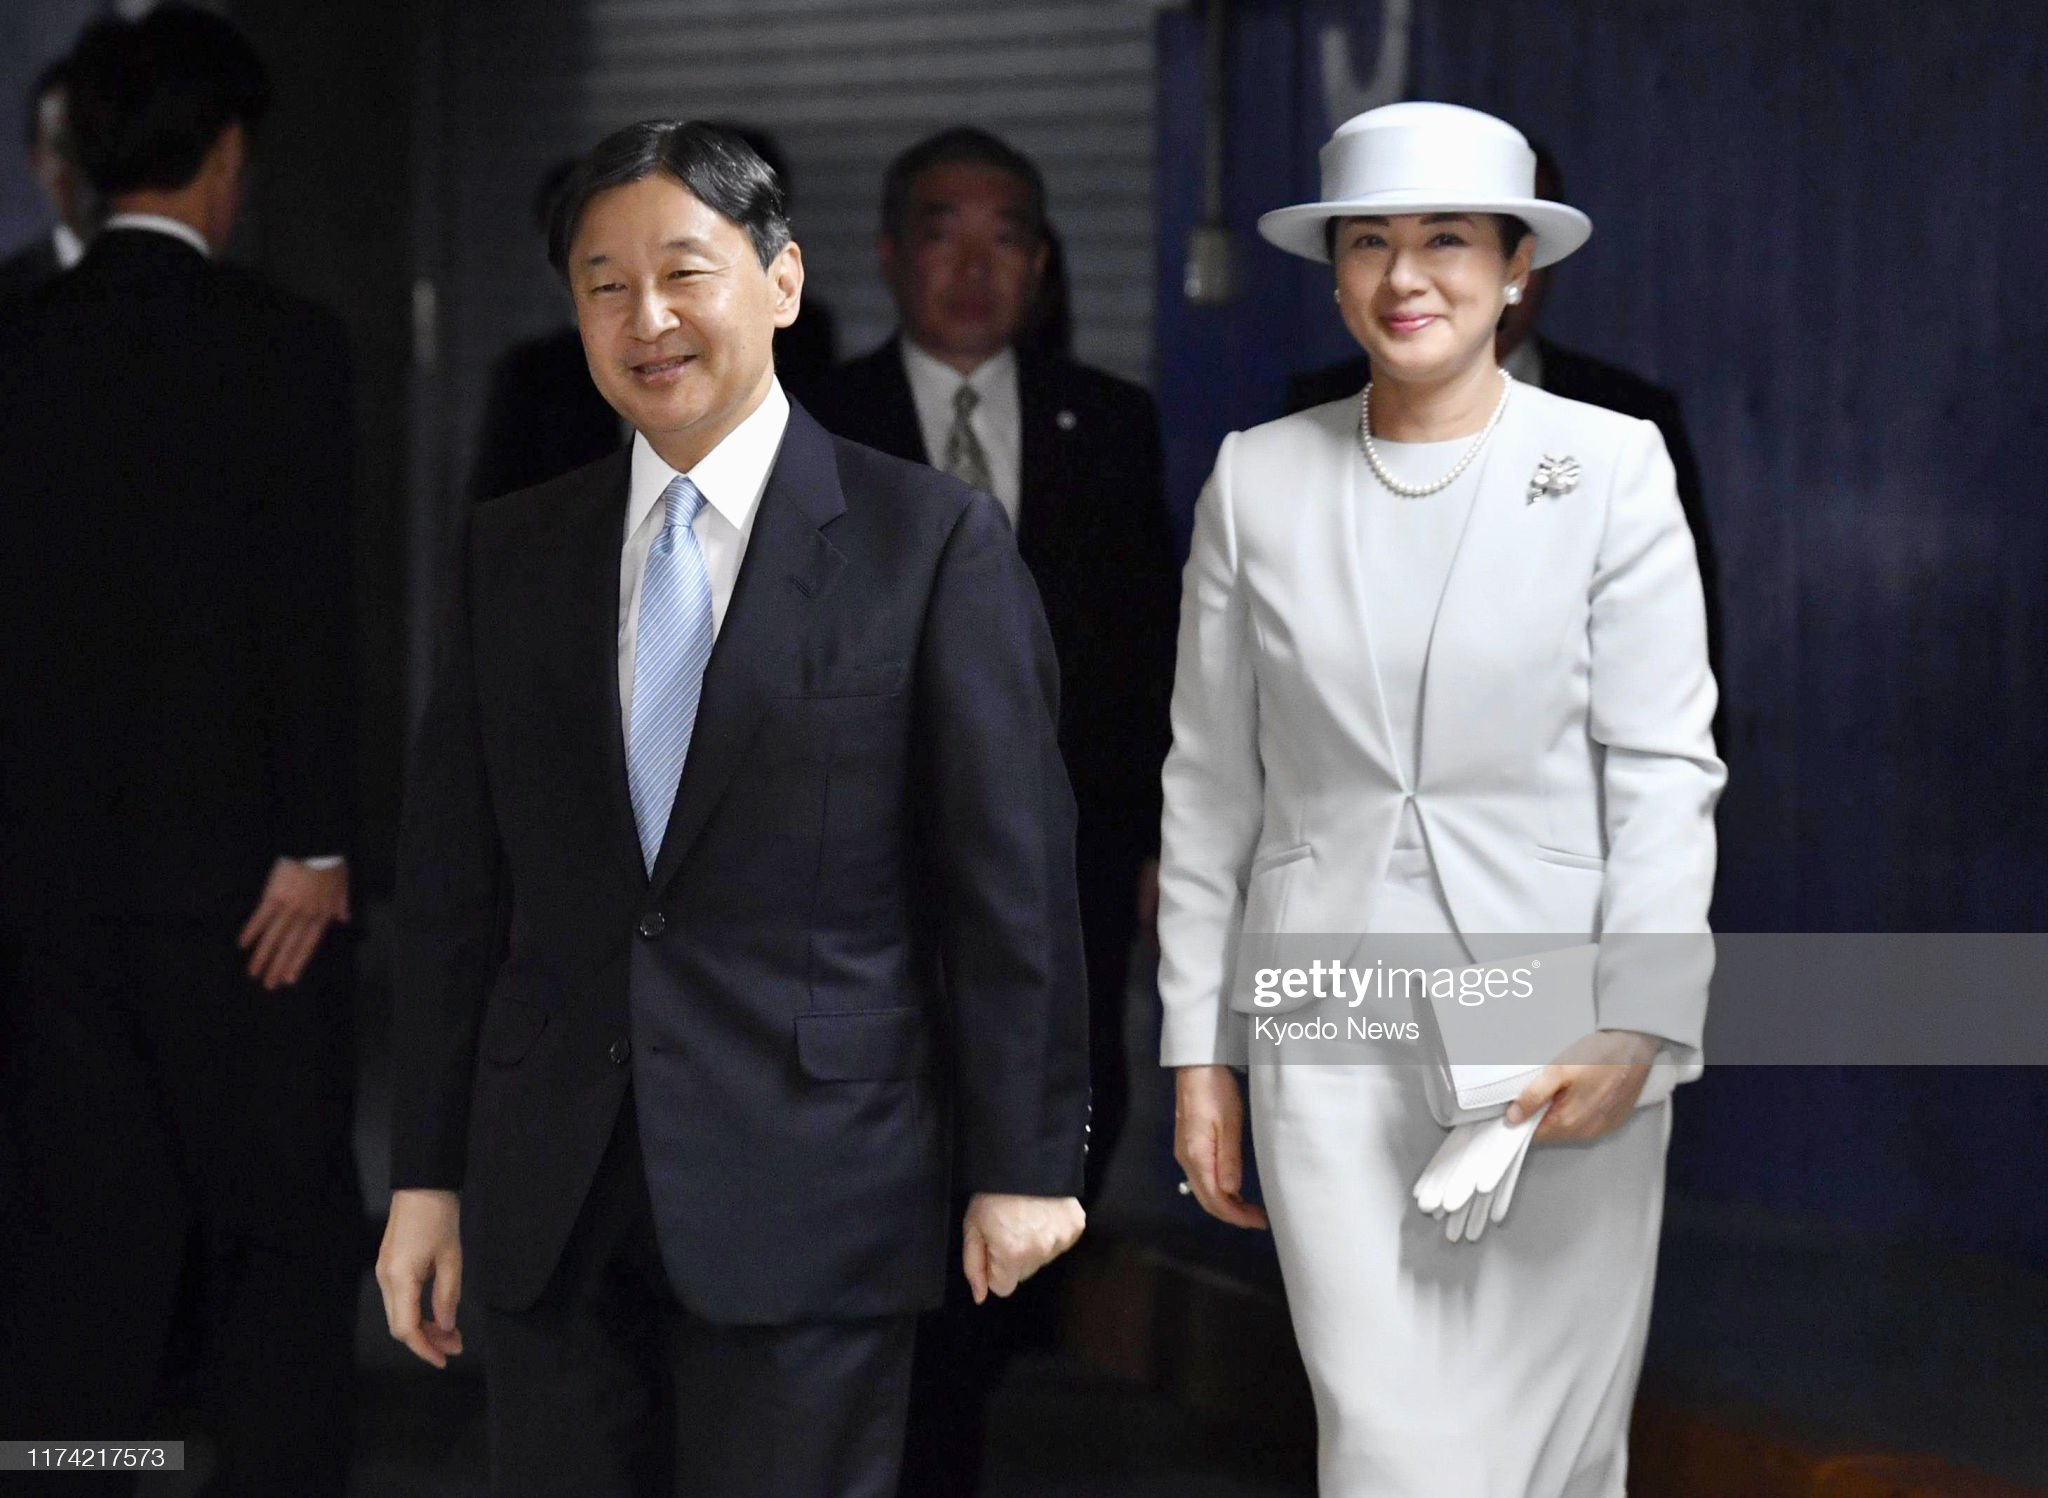 japanese-emperor-naruhito-and-empress-masako-arrive-at-the-venue-for-picture-id1174217573